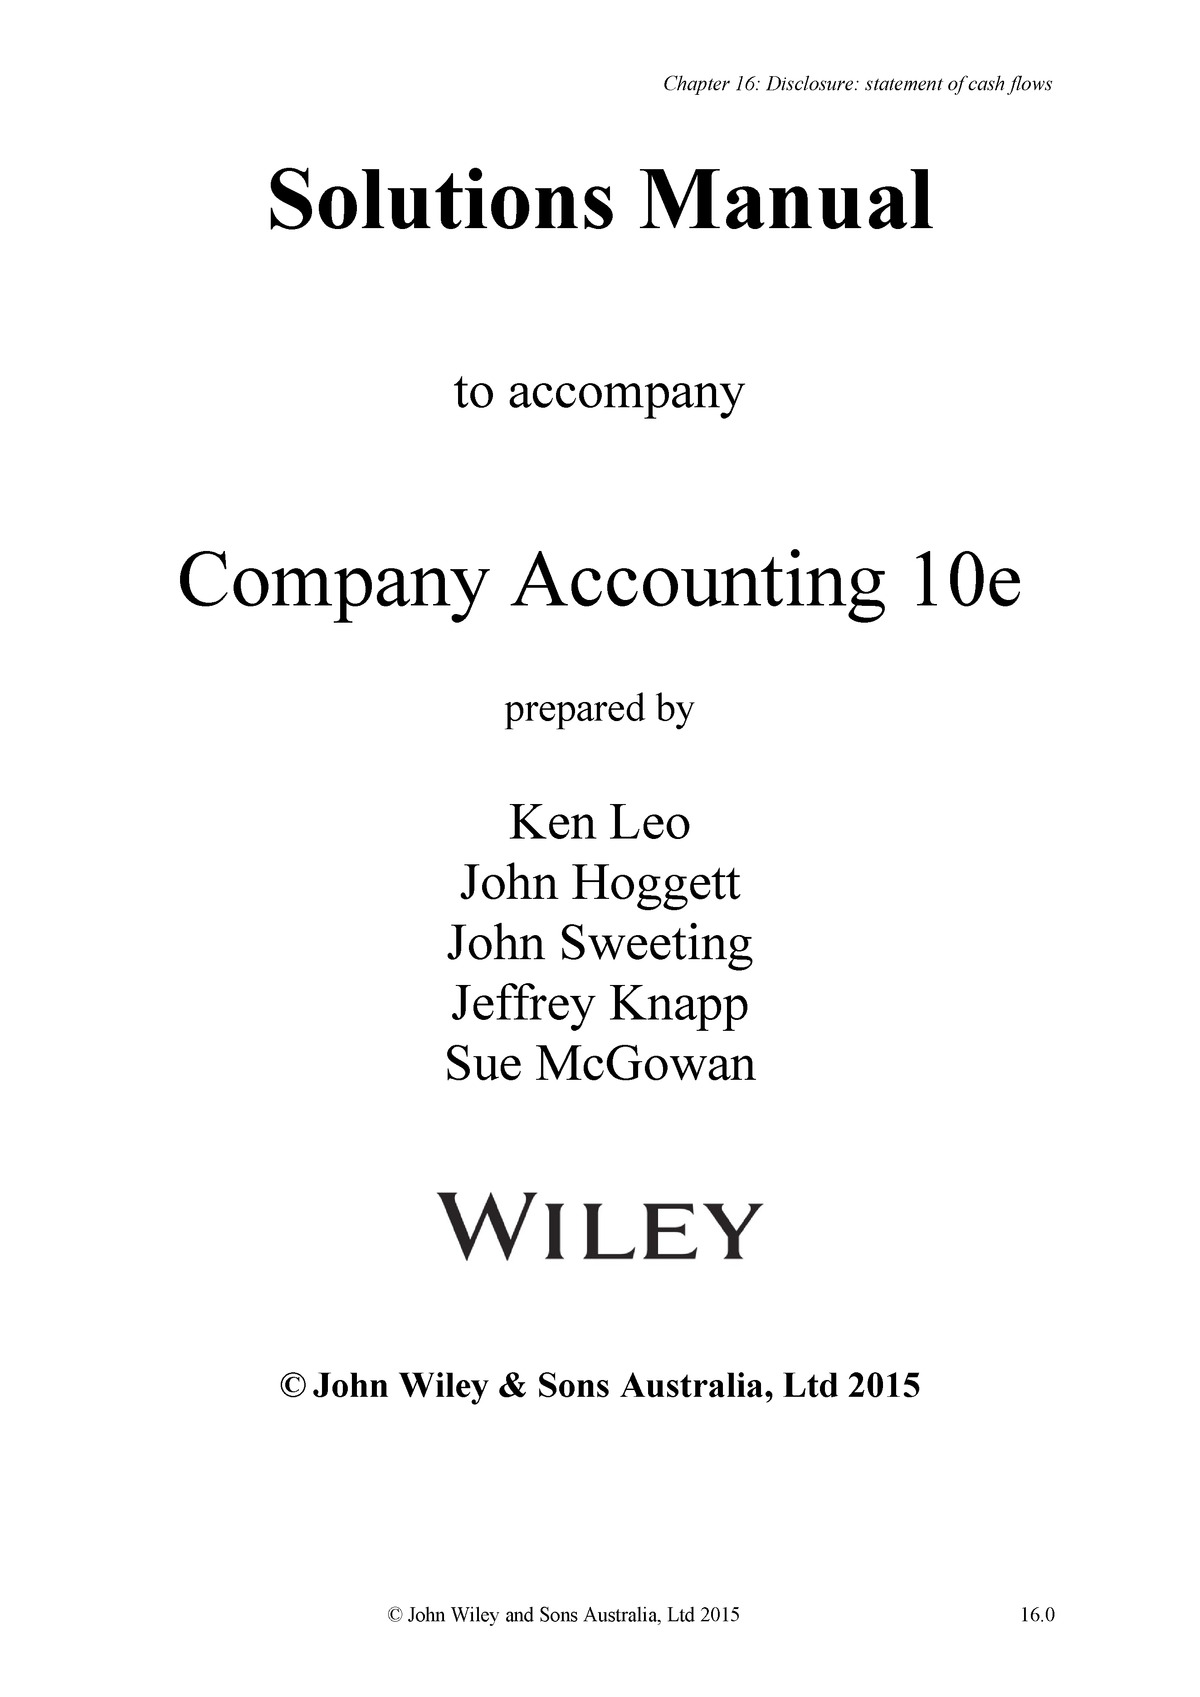 Ch16 CASH FLOW BOOK SOLUTION - ACC2100 COMPANY ACCOUNTING